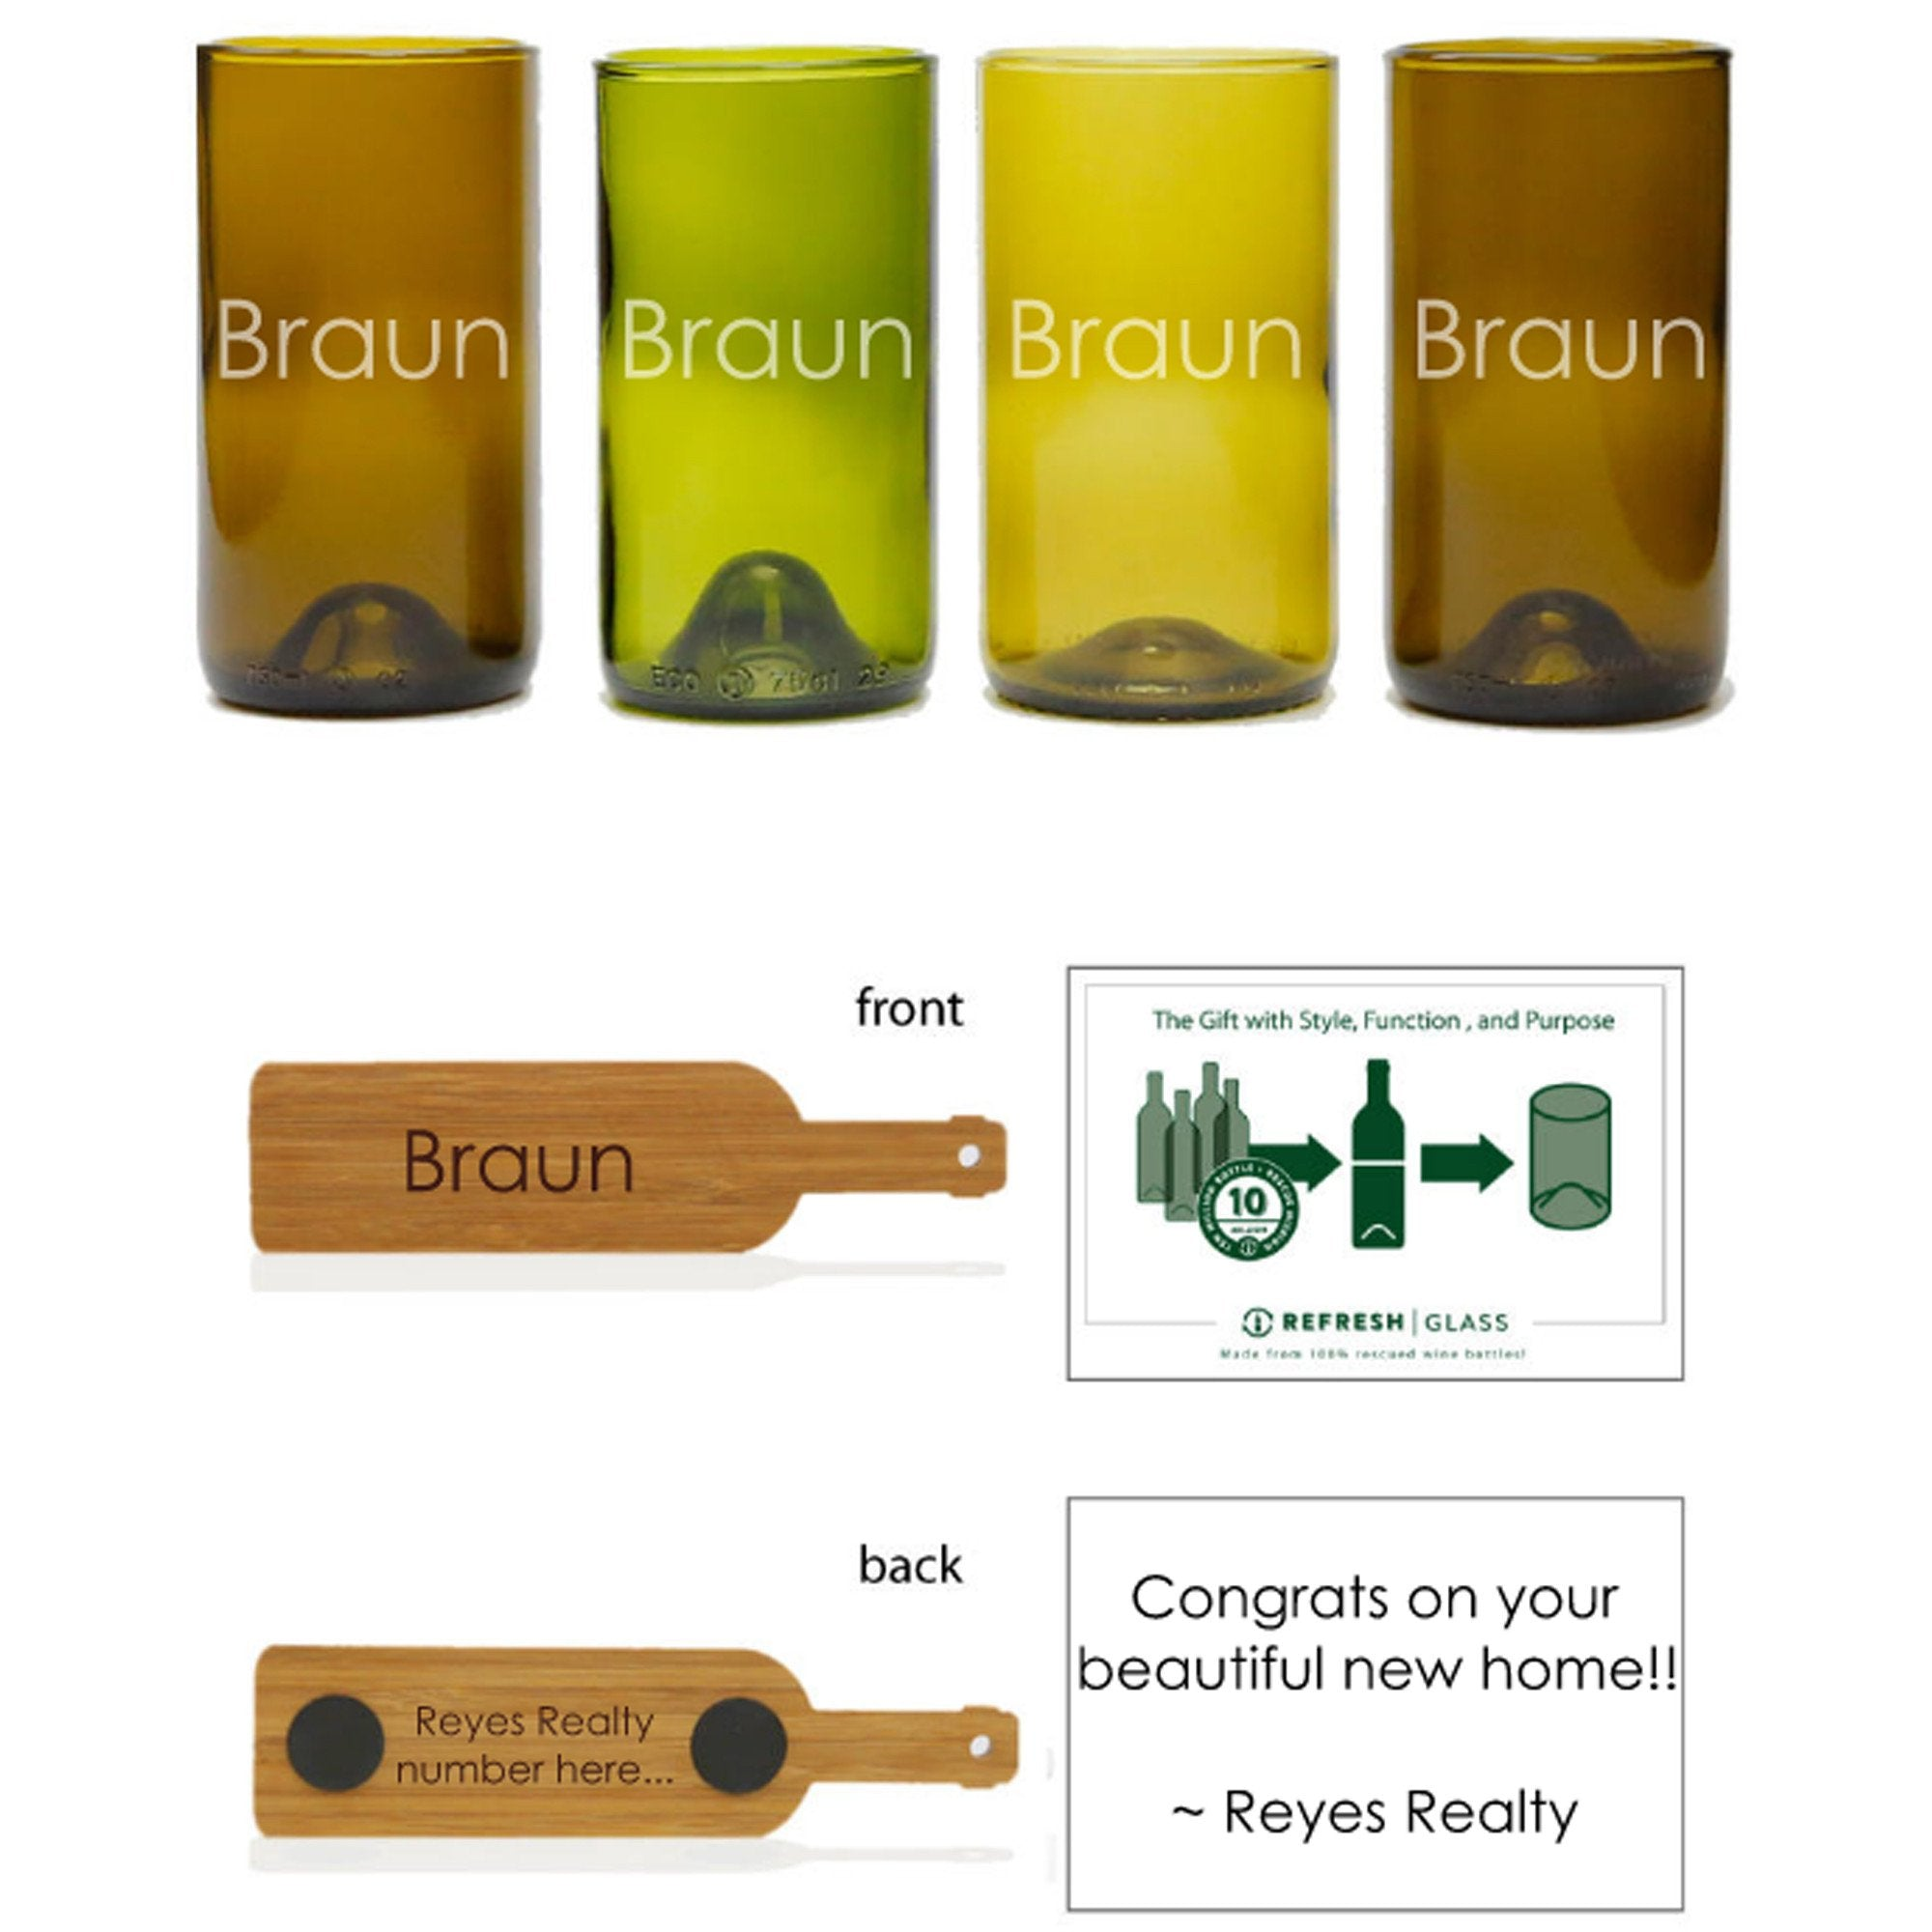 4-Tall Glass Gift Set - Name-Refresh Glass